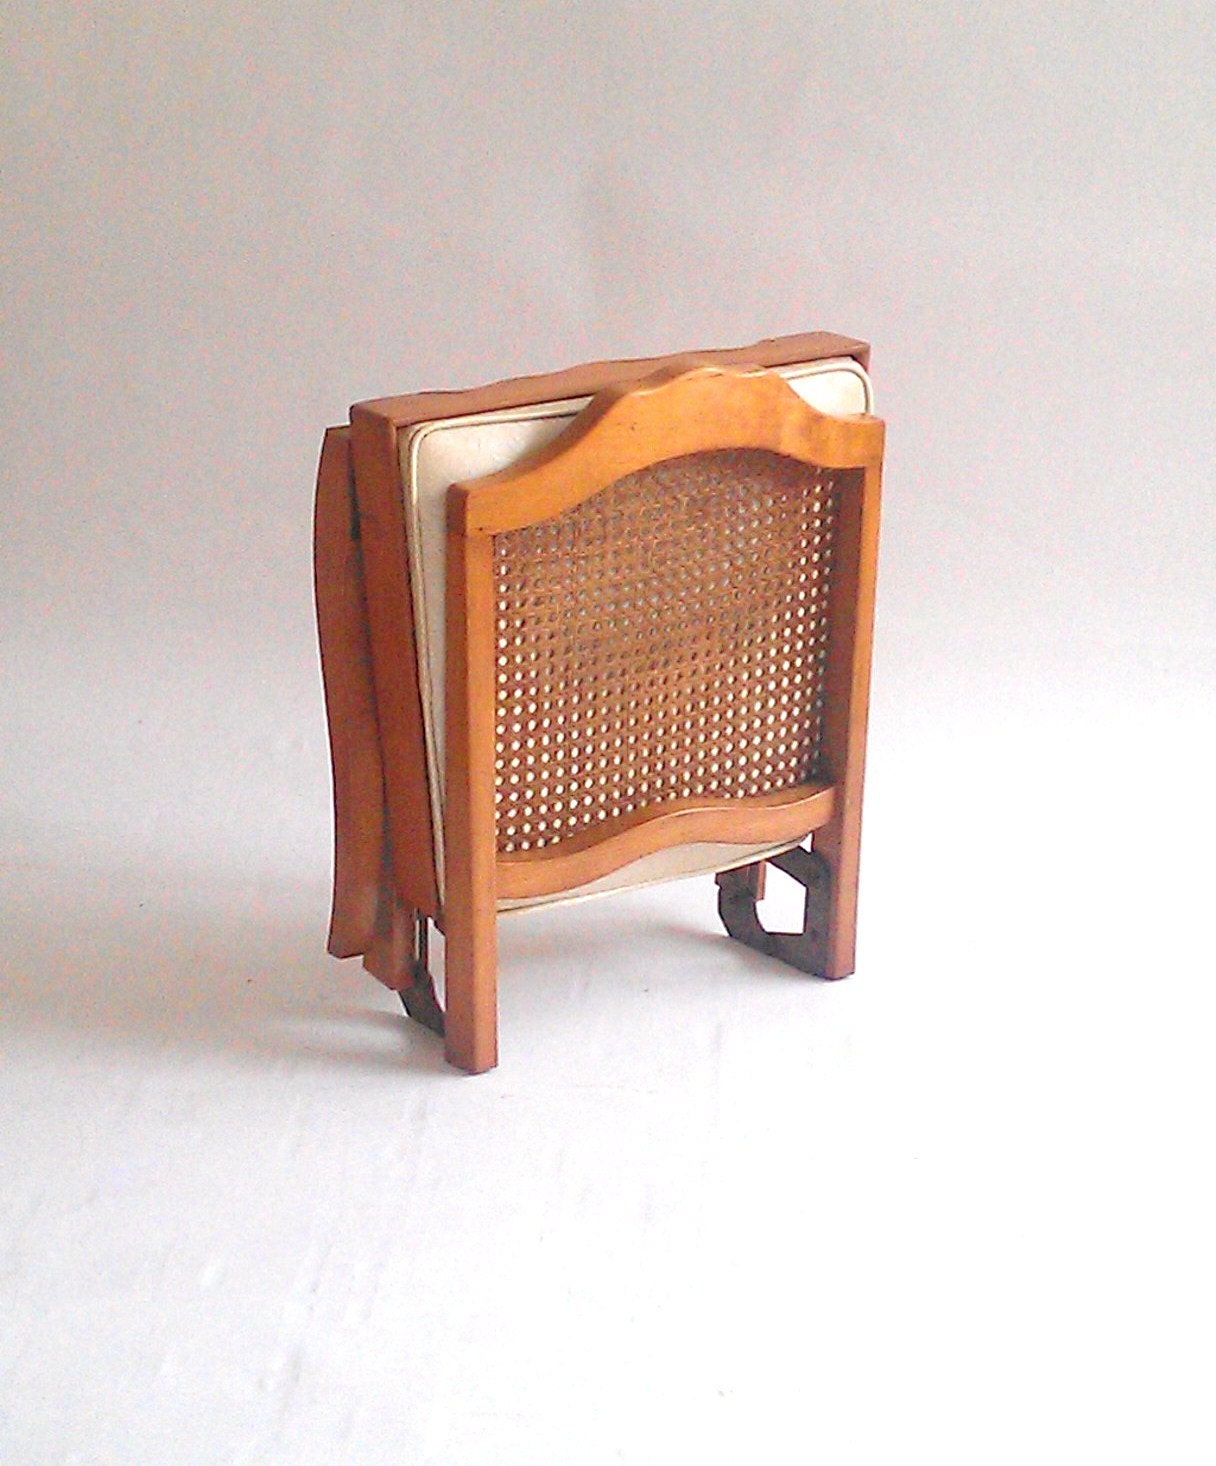 Leg o matic folding chair caned back by timandkimshow on etsy